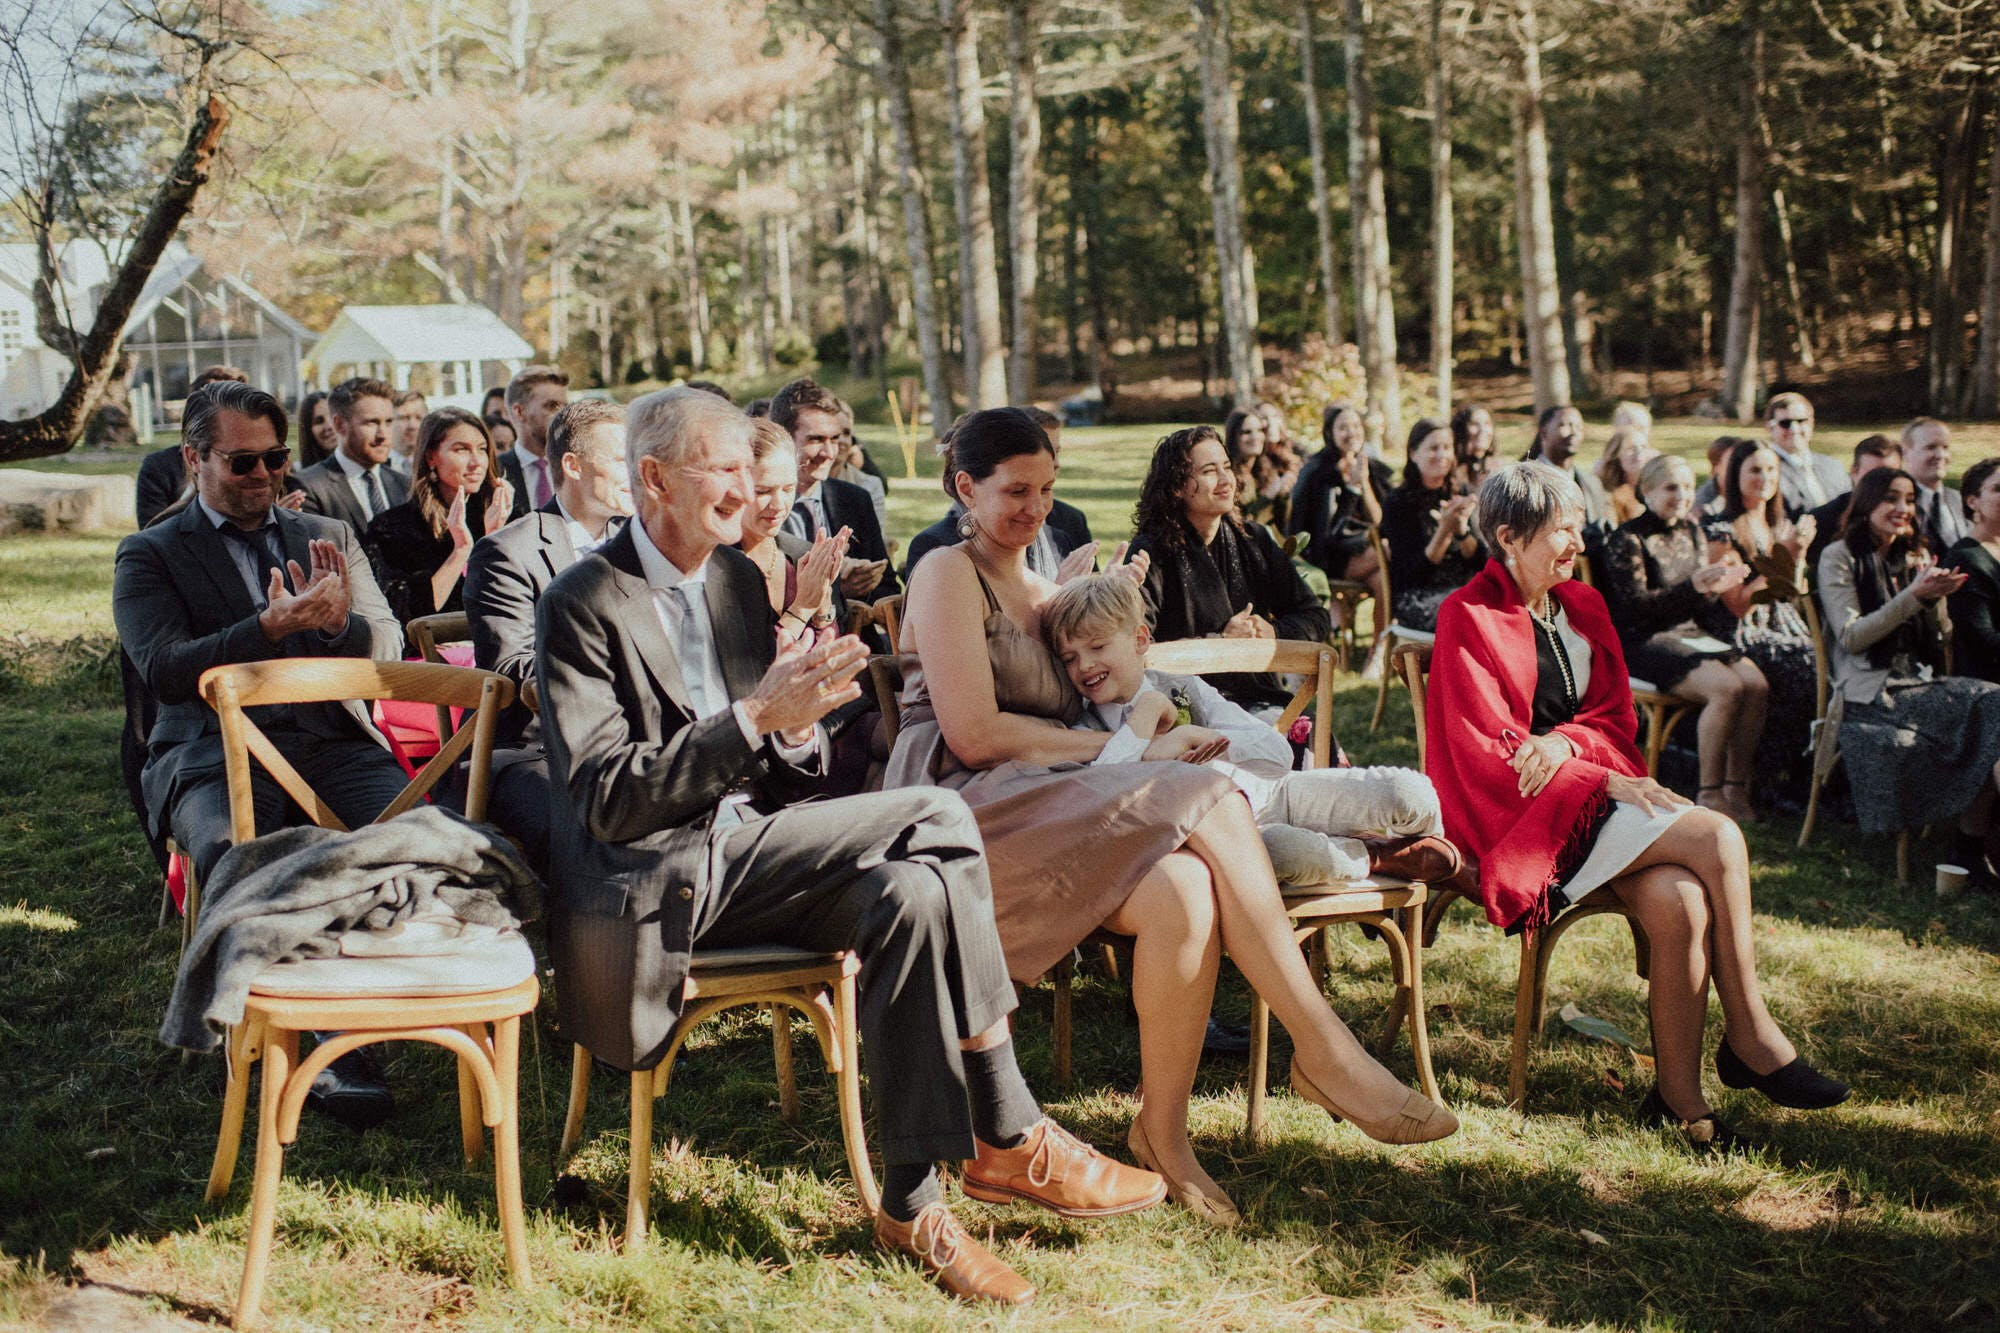 candid shots of guests at ceremony